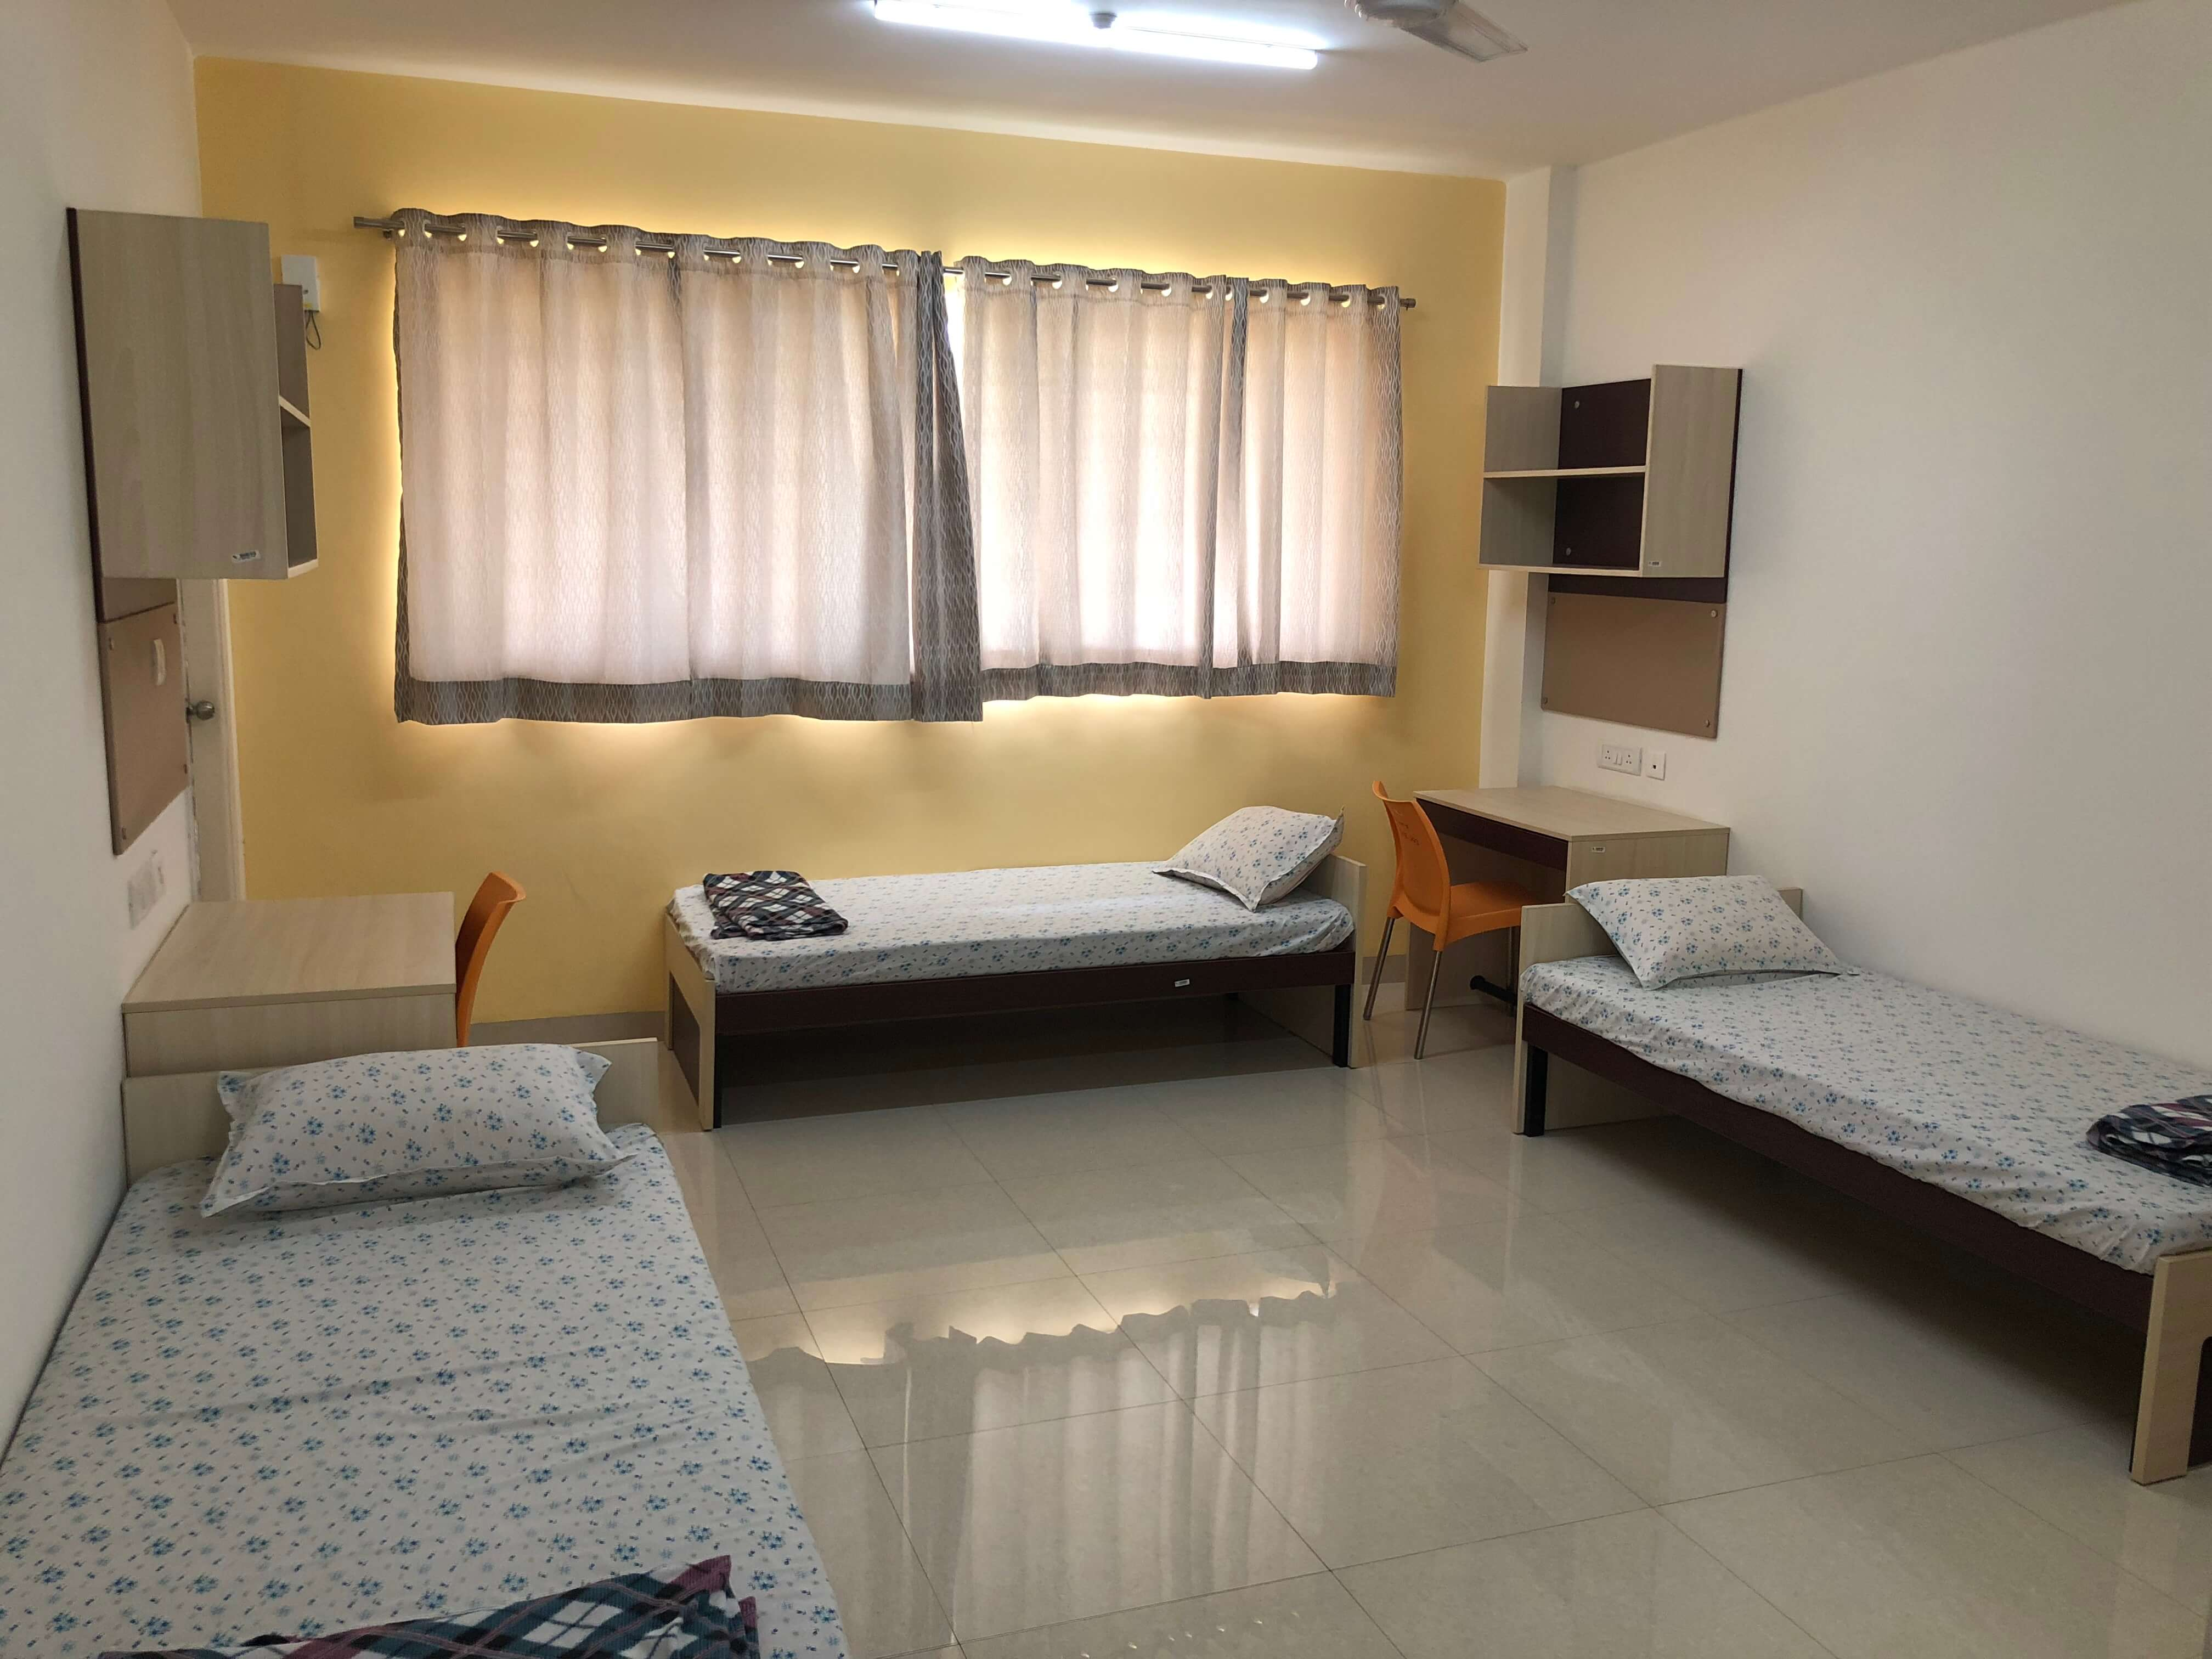 Best Hostel Rooms - SIBM Hyderabad